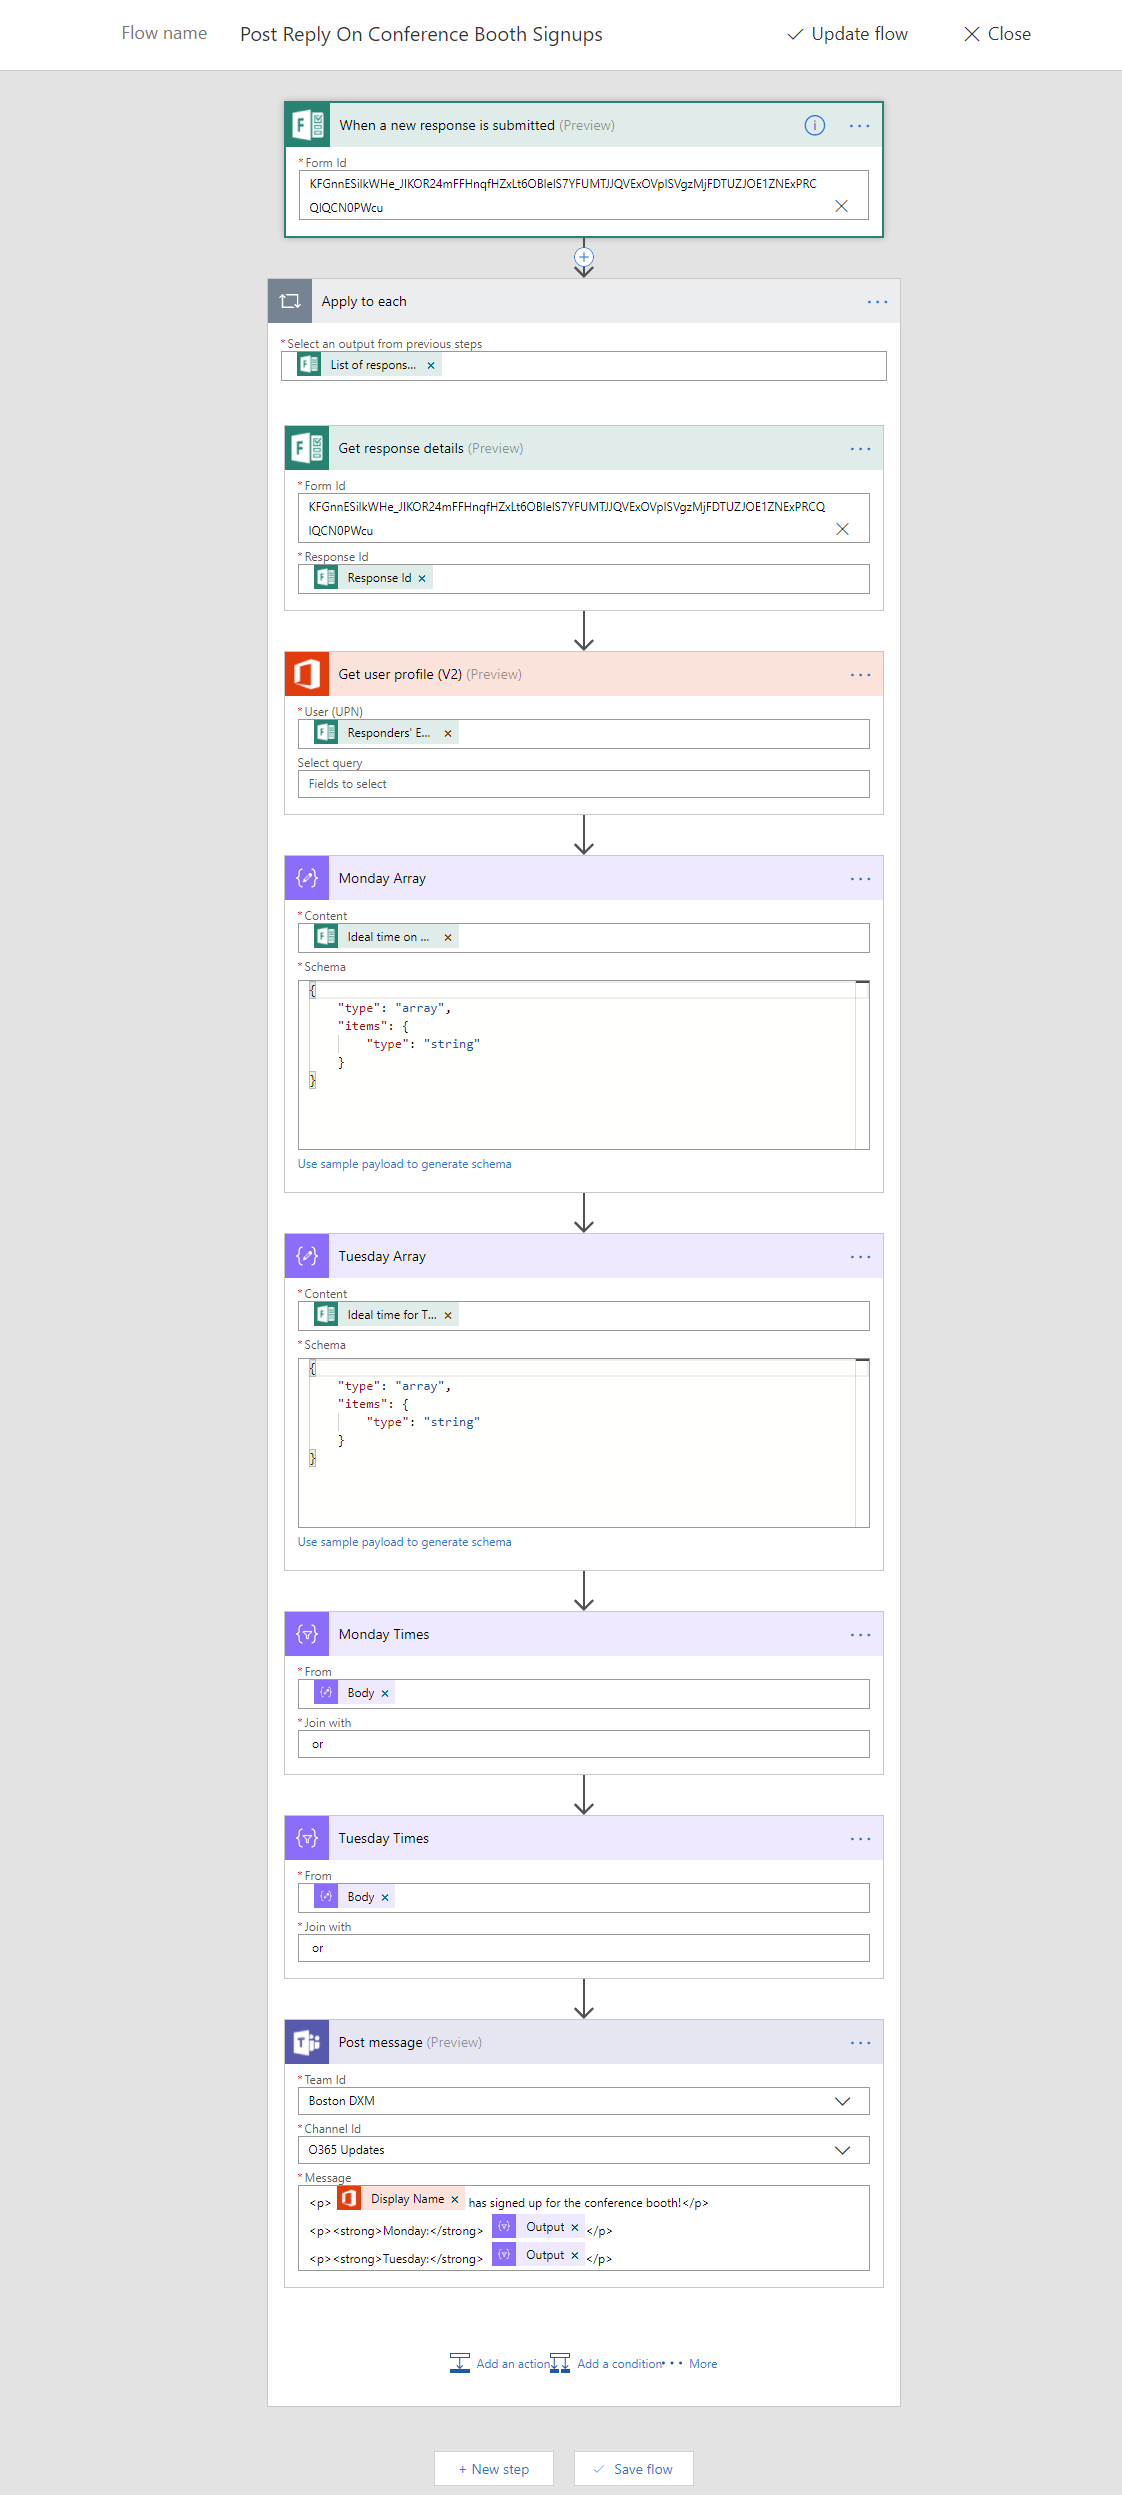 Integrating Forms into Teams, bringing it home with